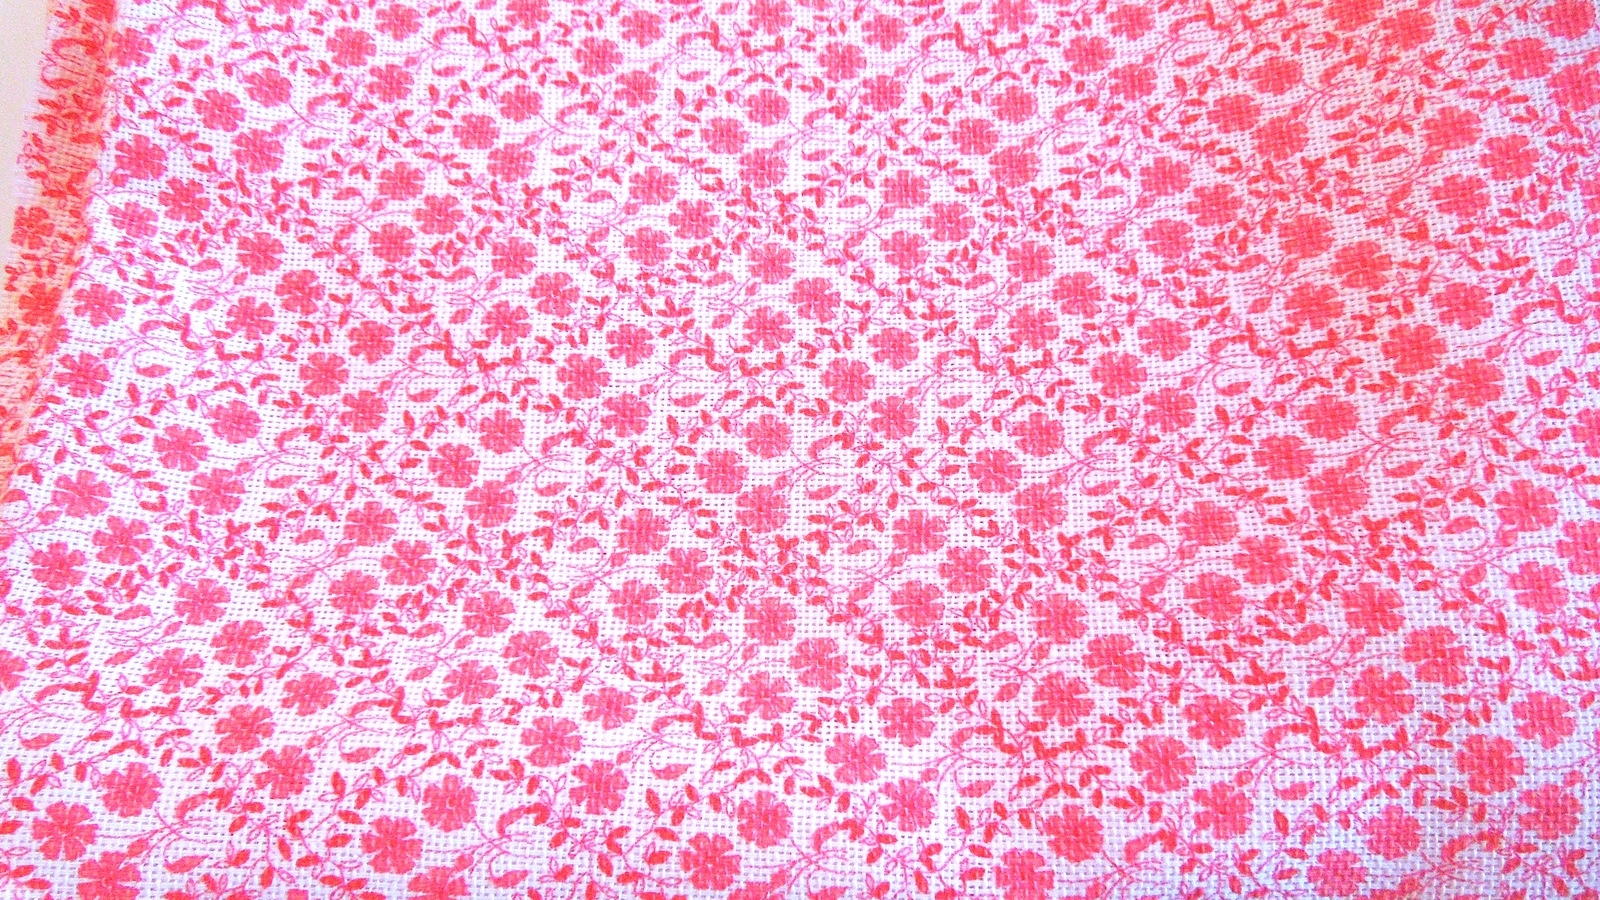 """2 3/4 Yards of  44"""" Wide Pink Coral Floral Textured Cotton Fabric   #5015"""